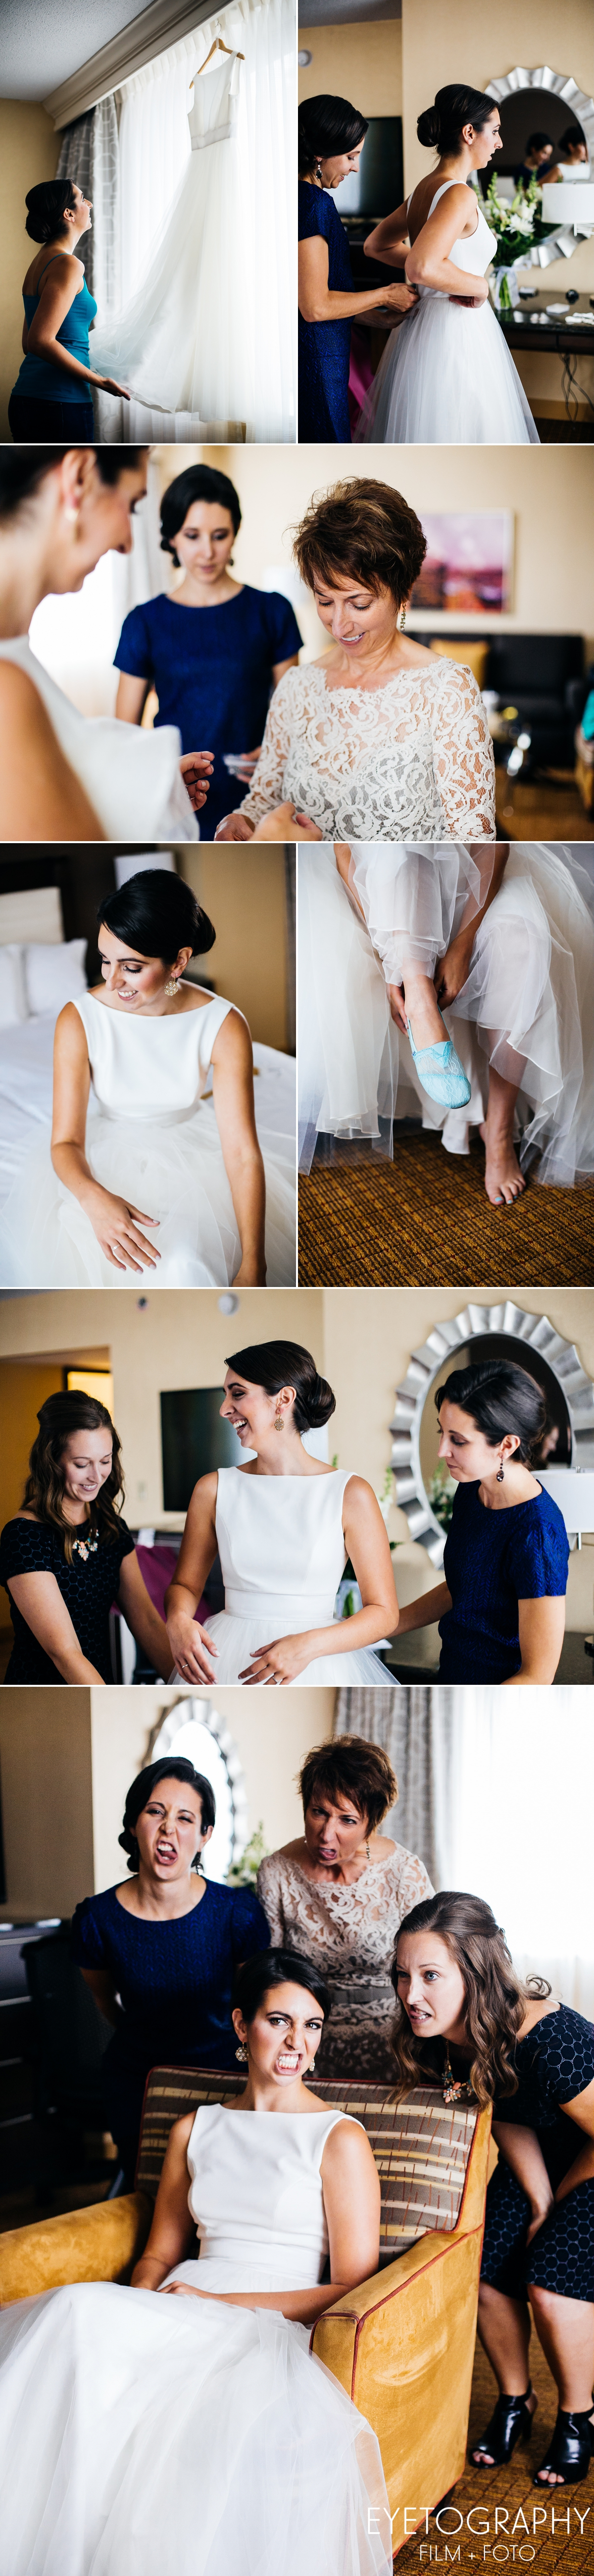 Aster Cafe Wedding - Eyetography Film + Foto | Katharine + Blake 2